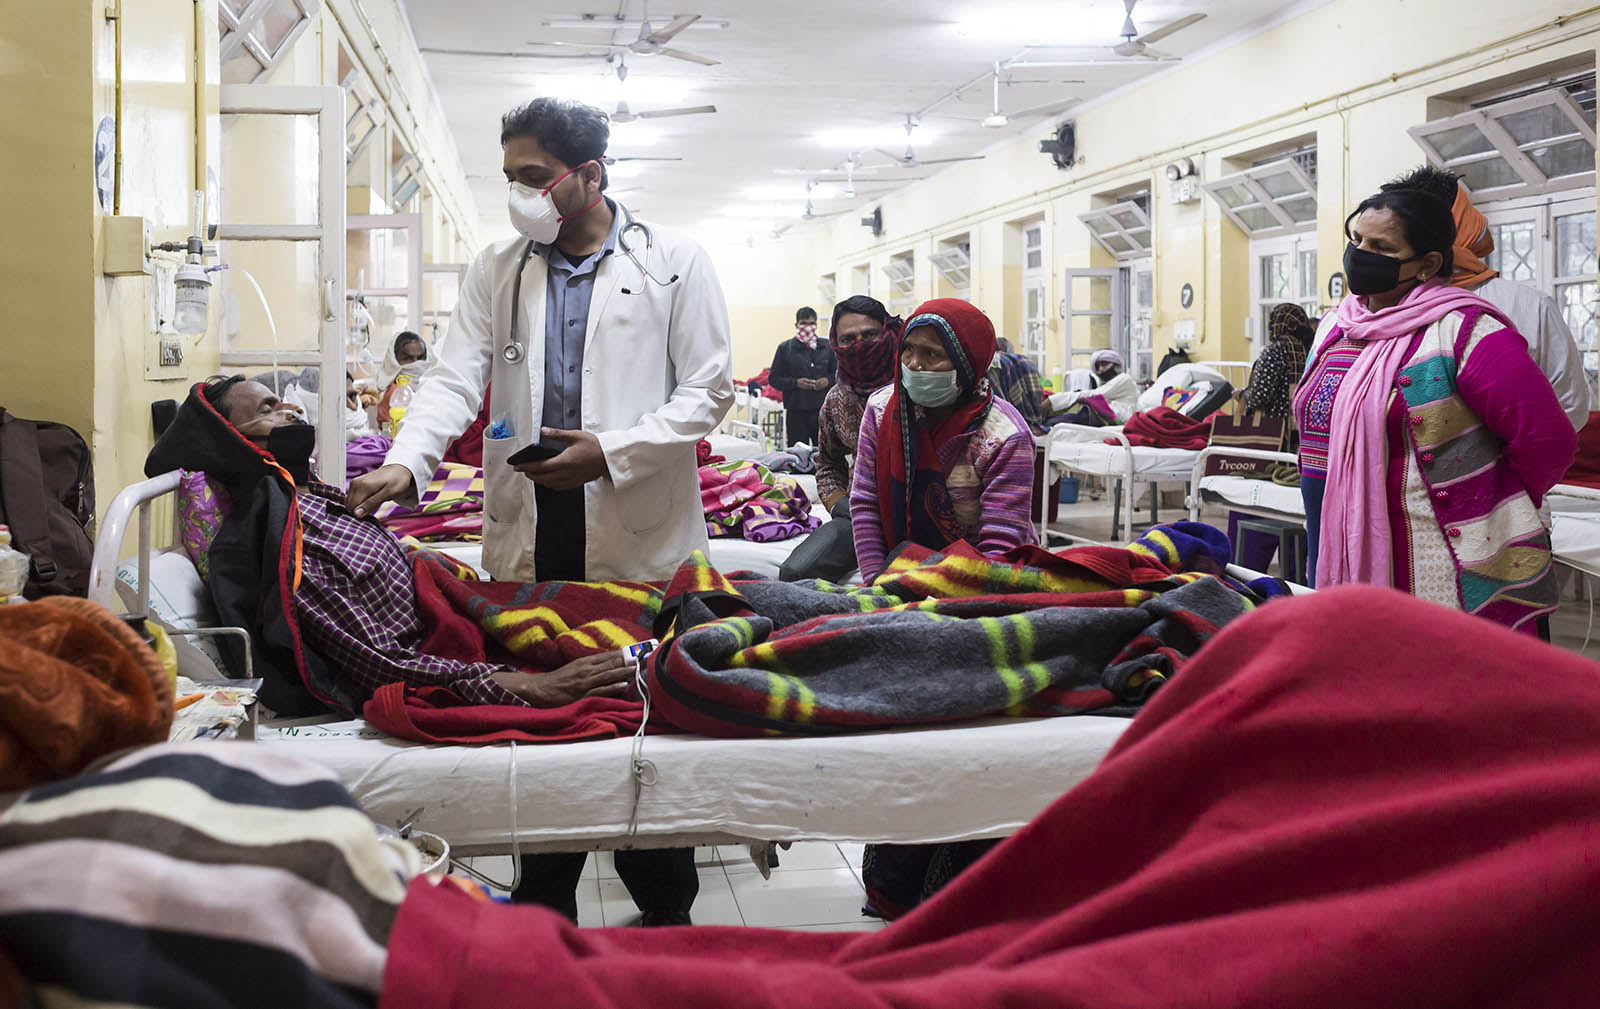 A TB patient being treated on a ward while family members look on at the National Institute of Tuberculosis and Respiratory Diseases, New Delhi.